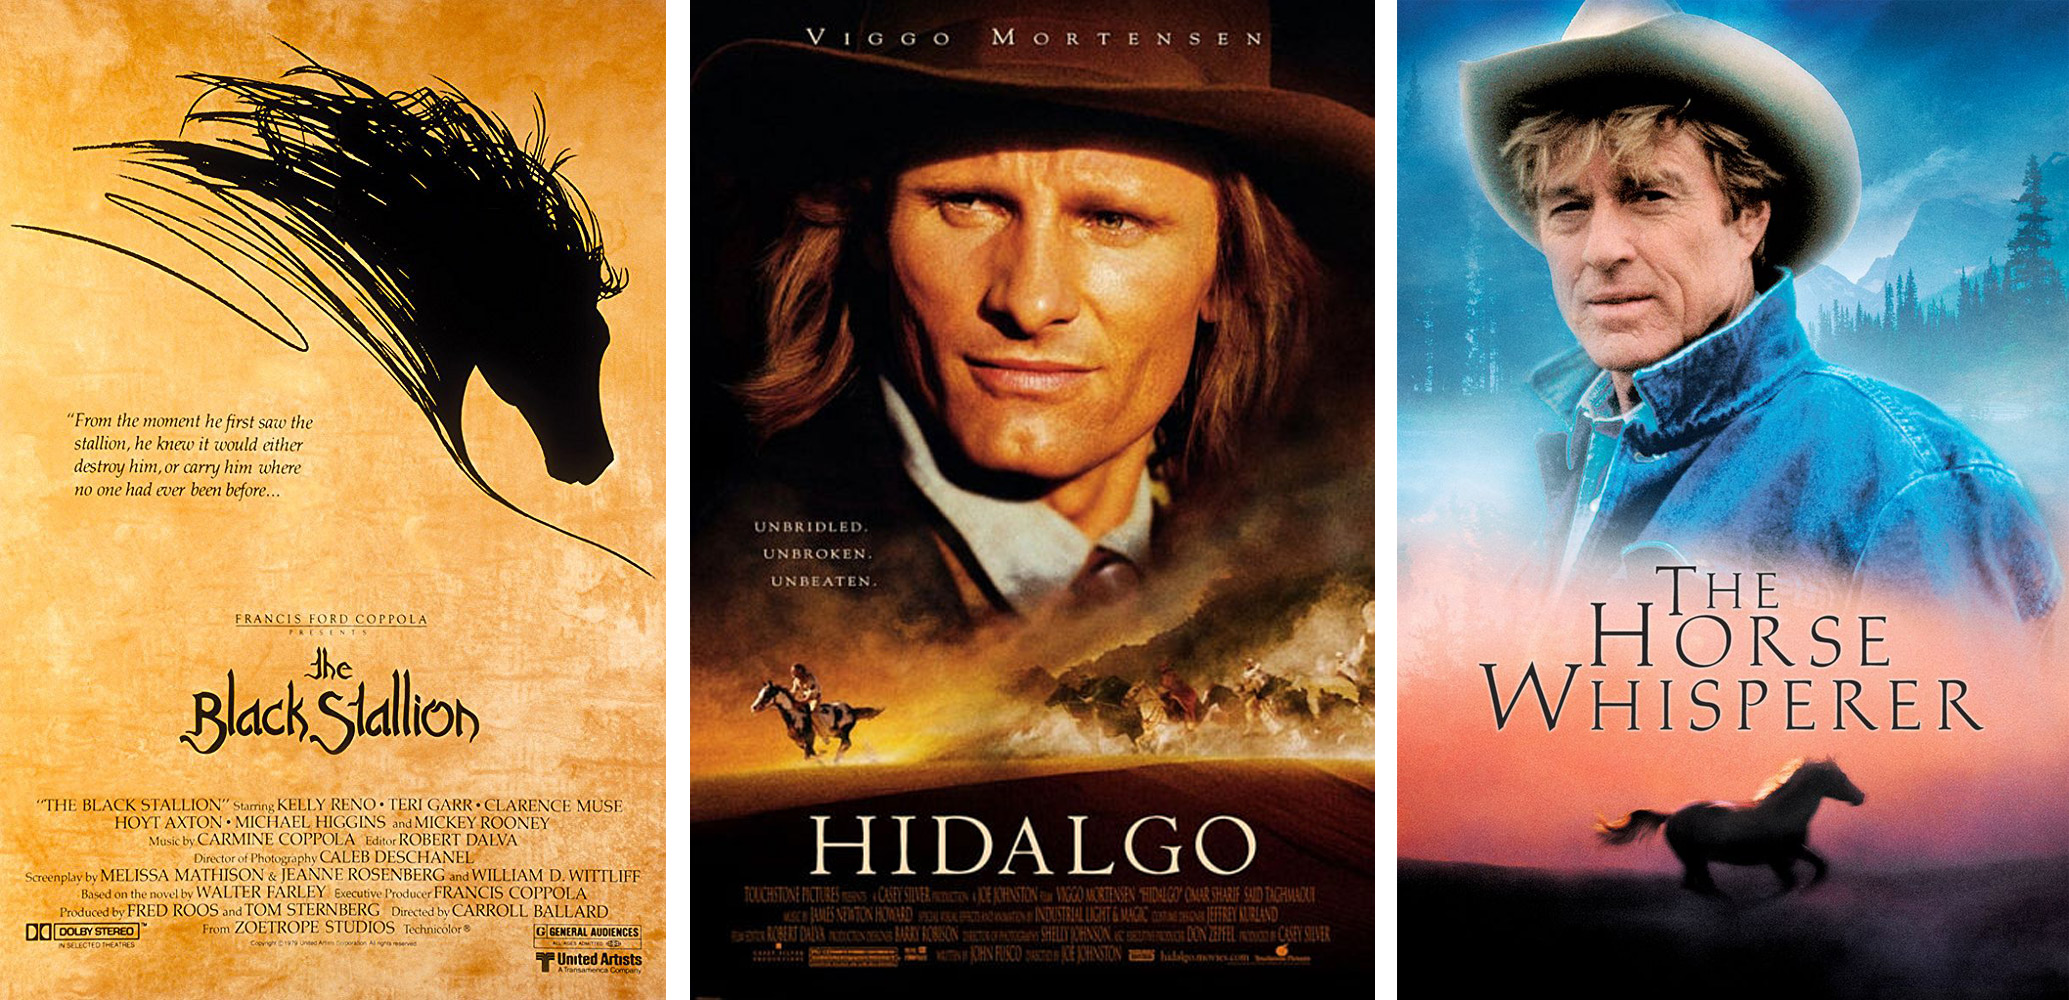 All About Anna 2005 Movie oscars 2018: the greatest horse films of all time